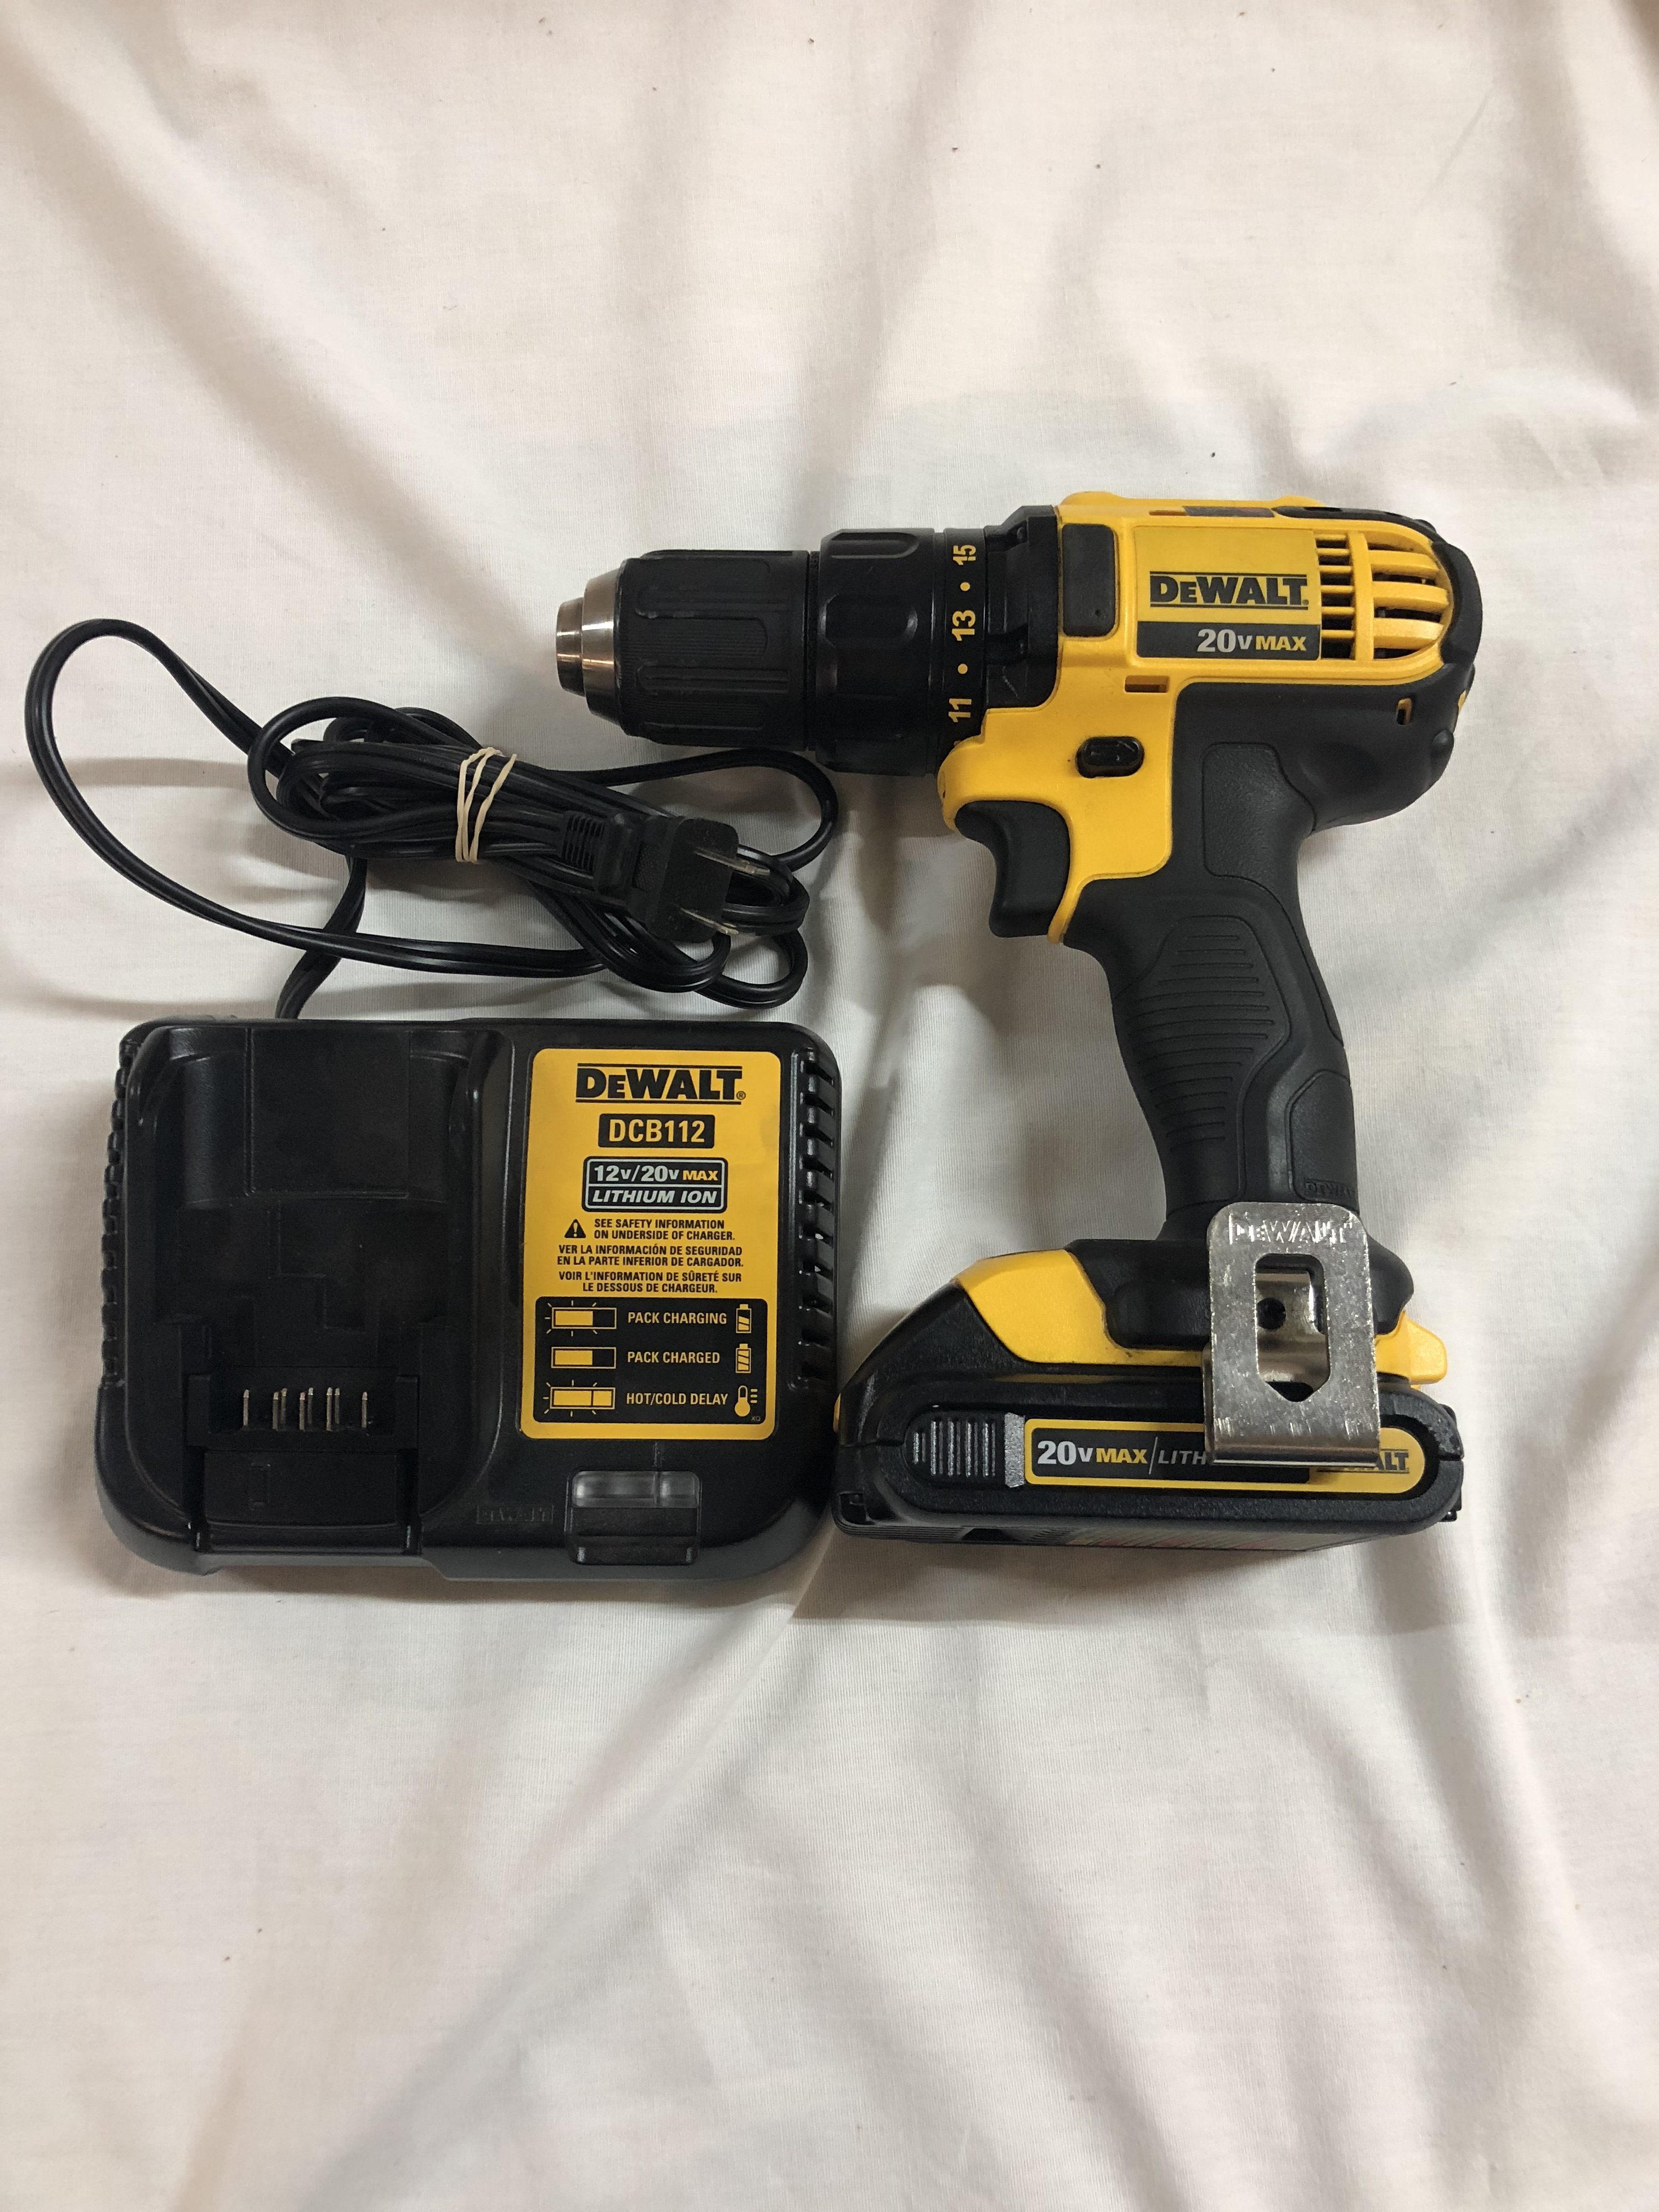 Dewalt 20v Drill With Charger